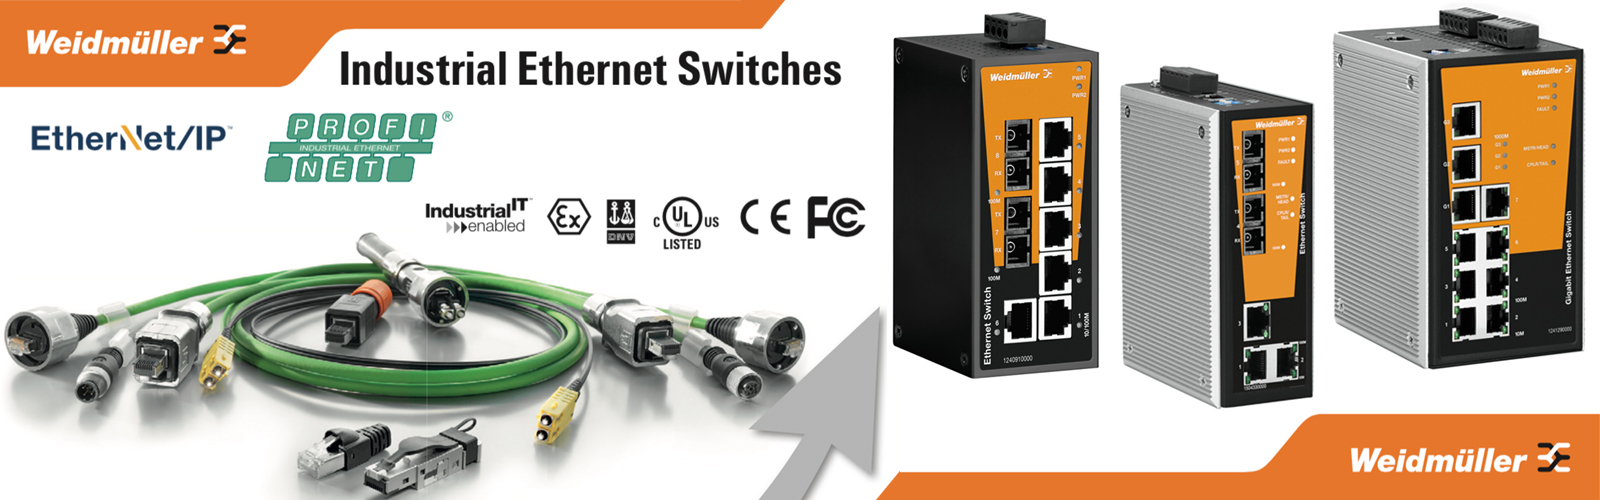 ETHERNET SWITCH WEIDMULLER